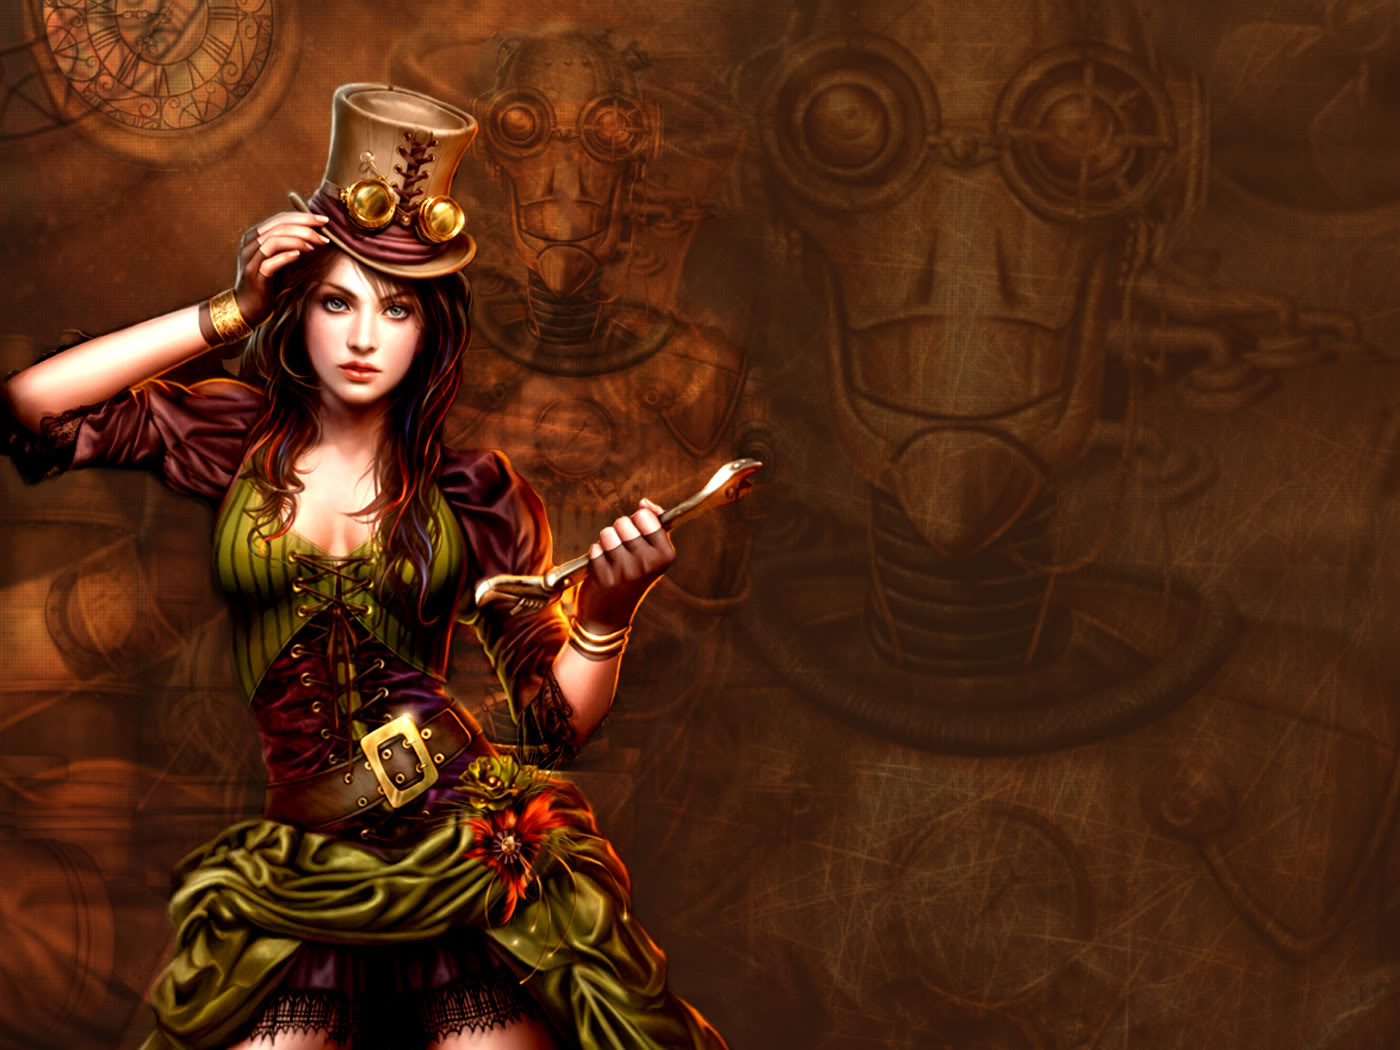 steampunk tags pictures 216591   Geek Vox 1400x1050